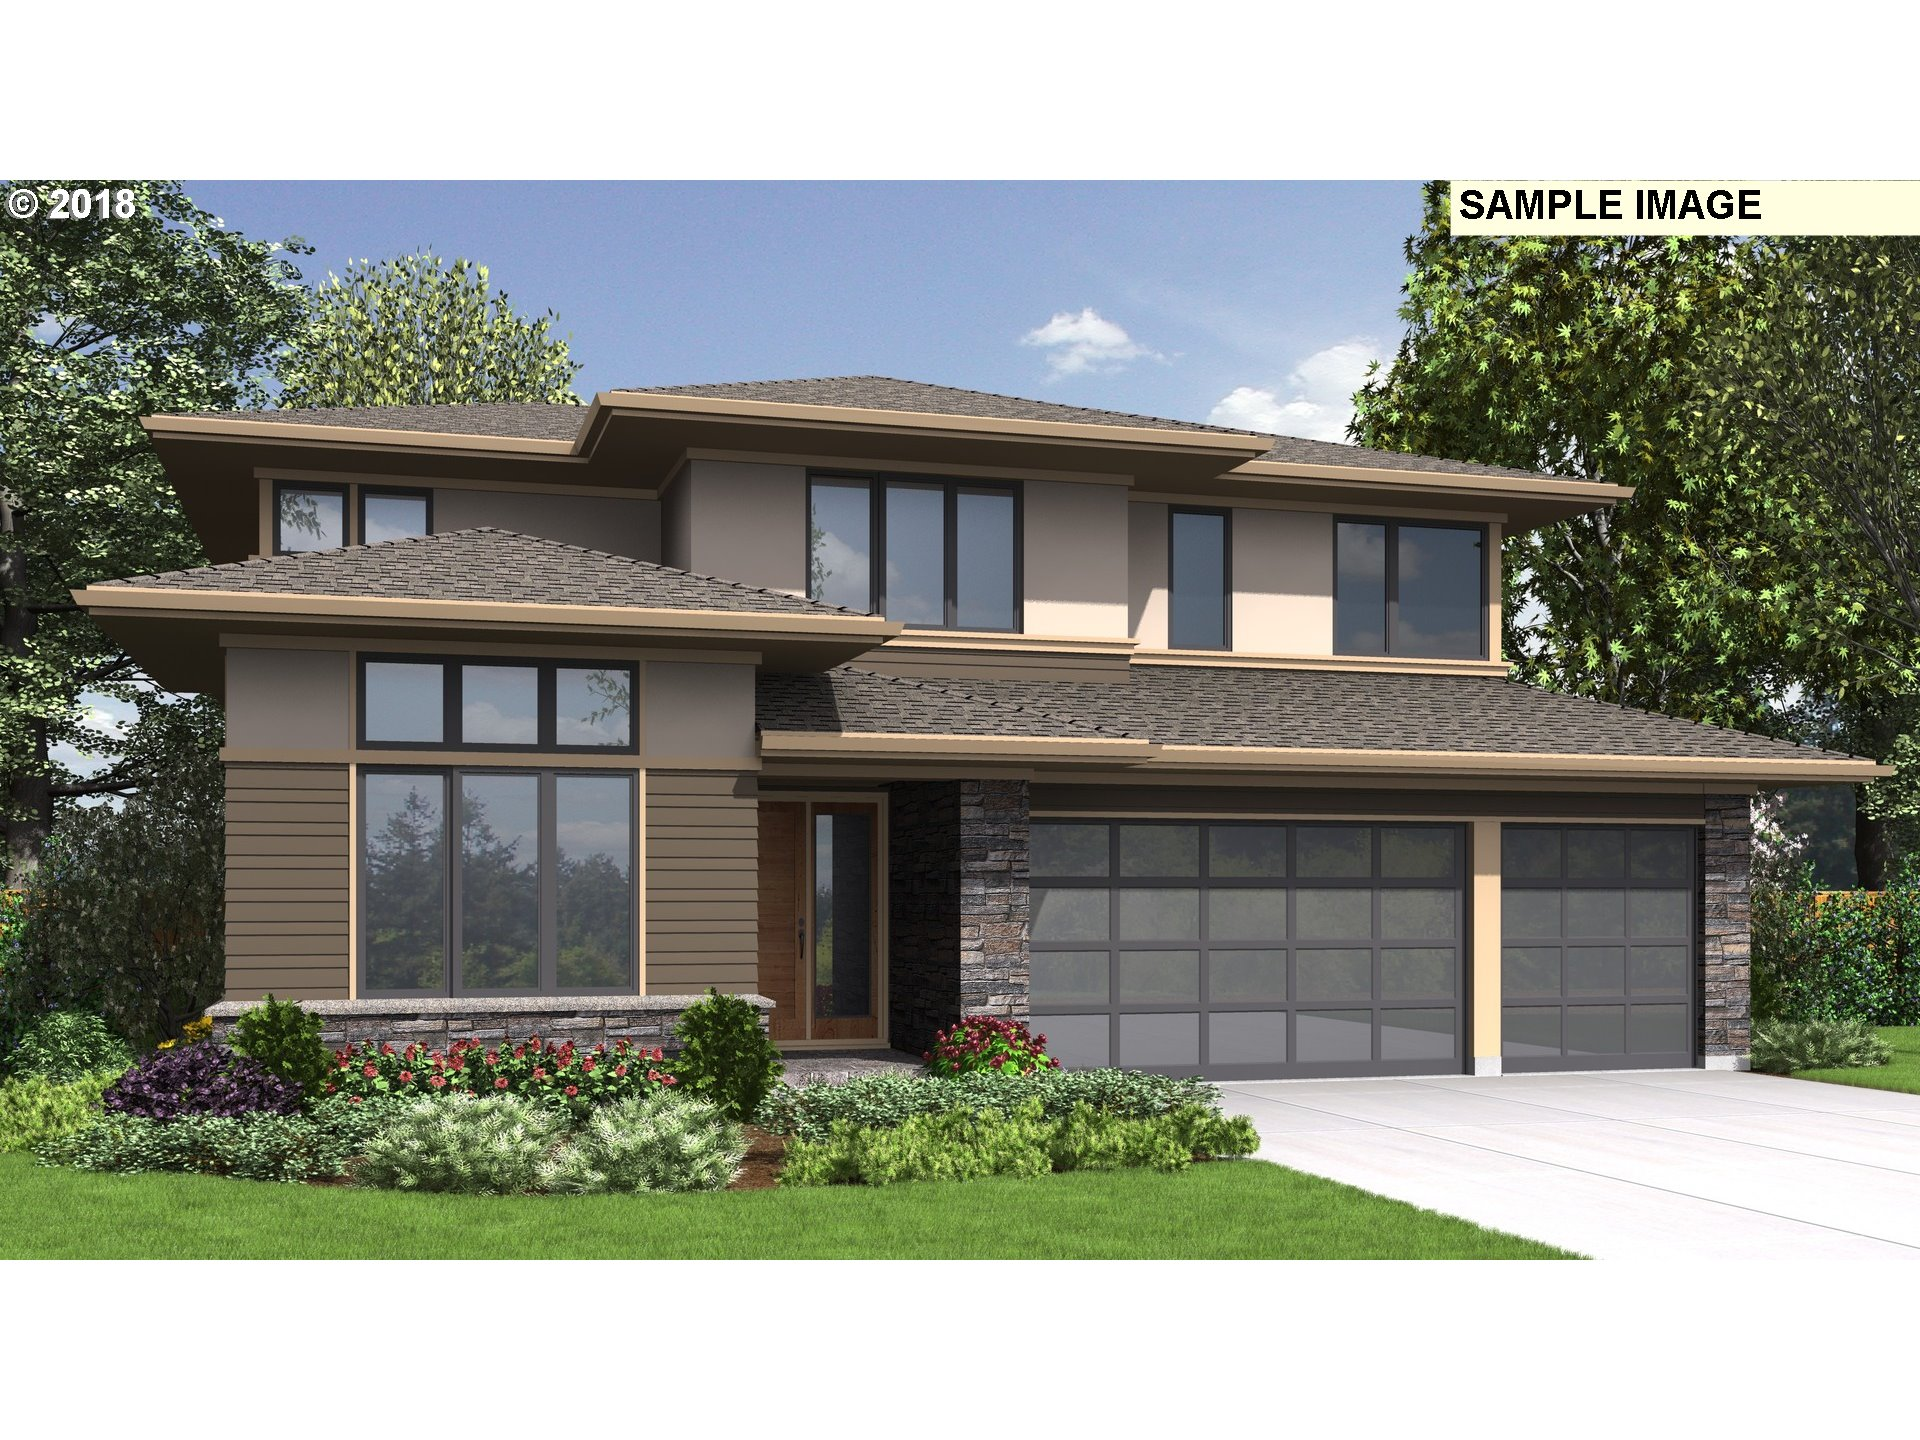 This elegant proposed custom home built by Steve Gibson Construction has everything you could ask for.  4 bedrooms, 3 baths, 2939 sq ft w/ 3 car garage. Make sure to check out the attached standard features list. Our standards are other builders upgrades.  Situated on a hard to find 10K lot in Happy Valley.